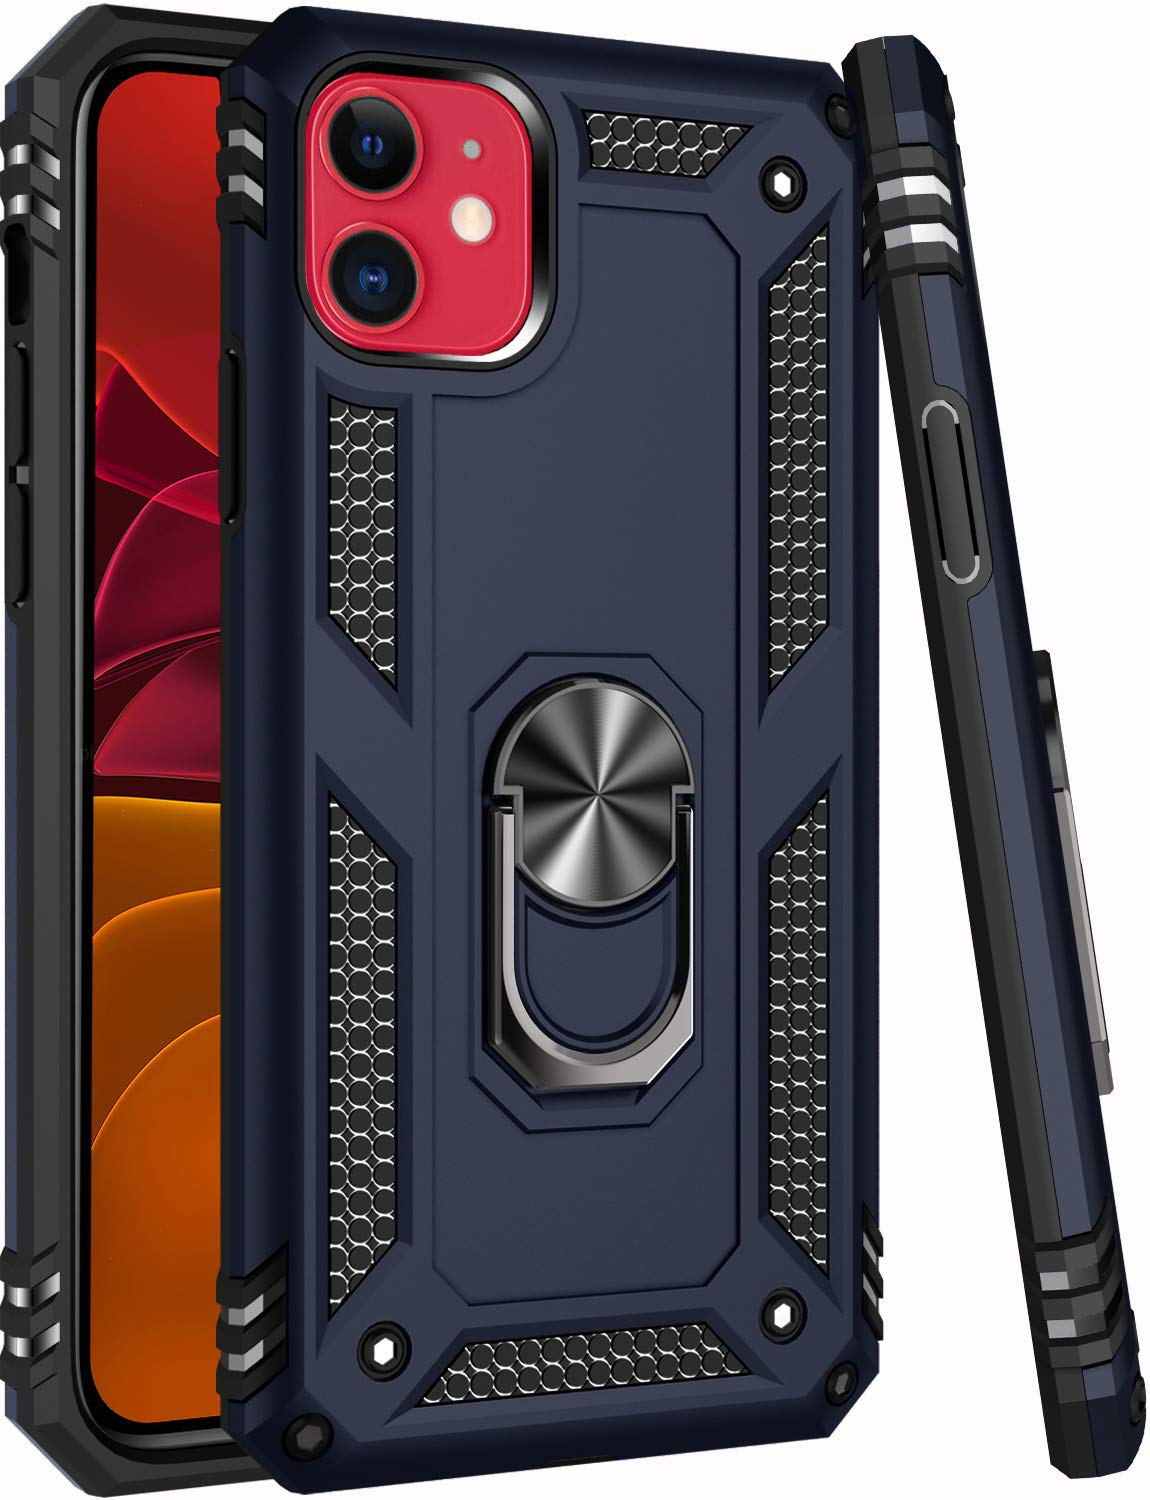 iPhone 11 Case,15ft Drop Tested,ZADORN Military Grade Heavy Duty Rugged Armor Cover Hard PC and Soft TPU Protective Phone Case for iPhone 11 6.1 inch 2019 Blue